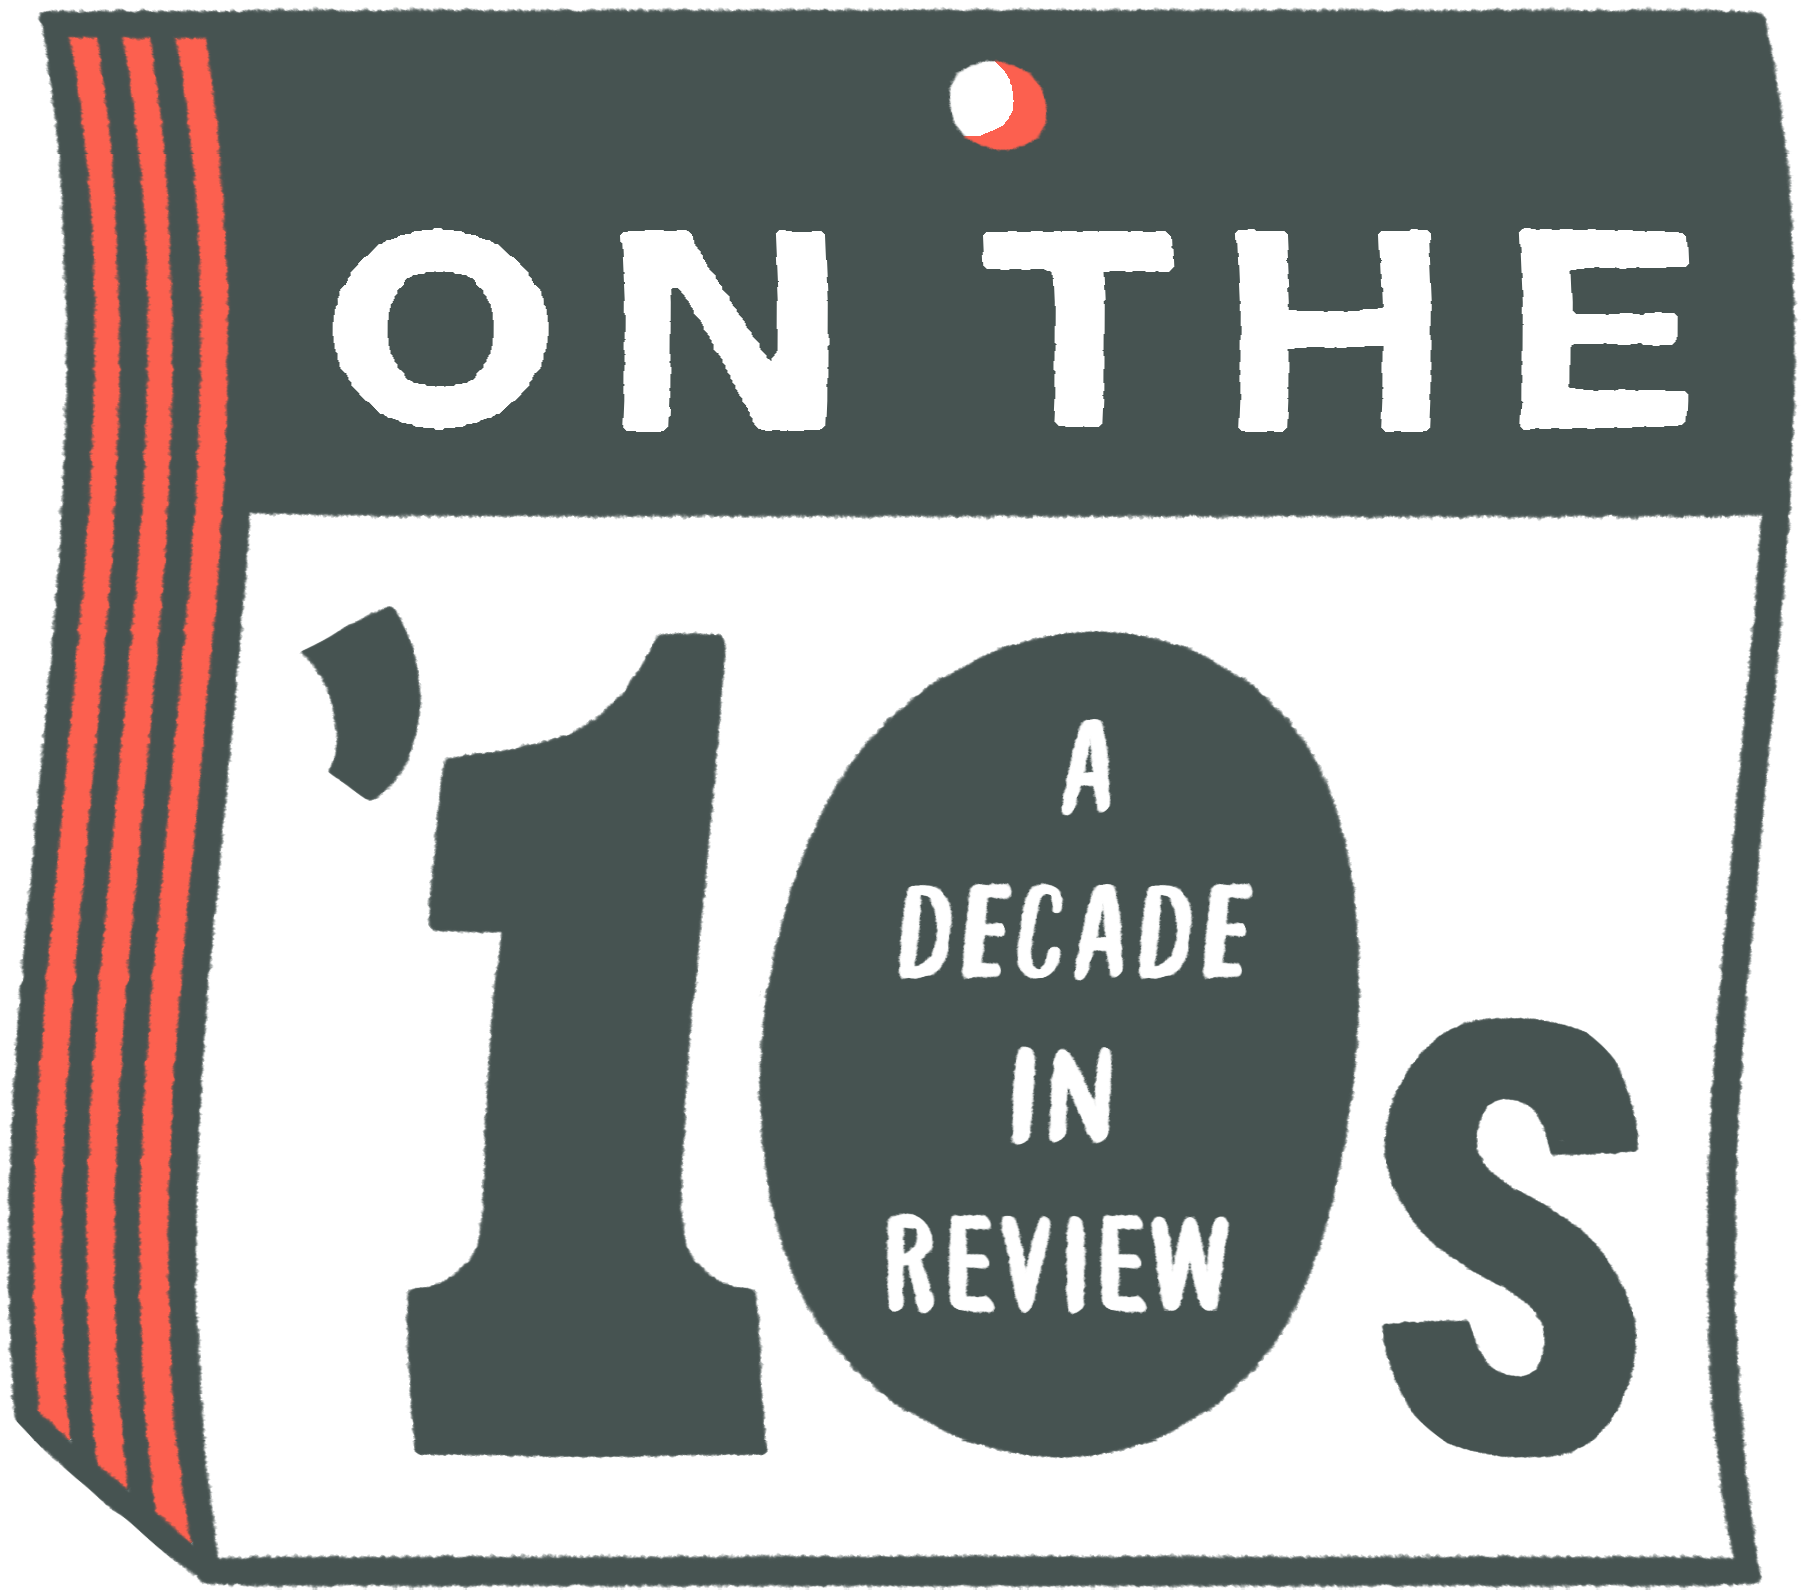 A Decade in Review